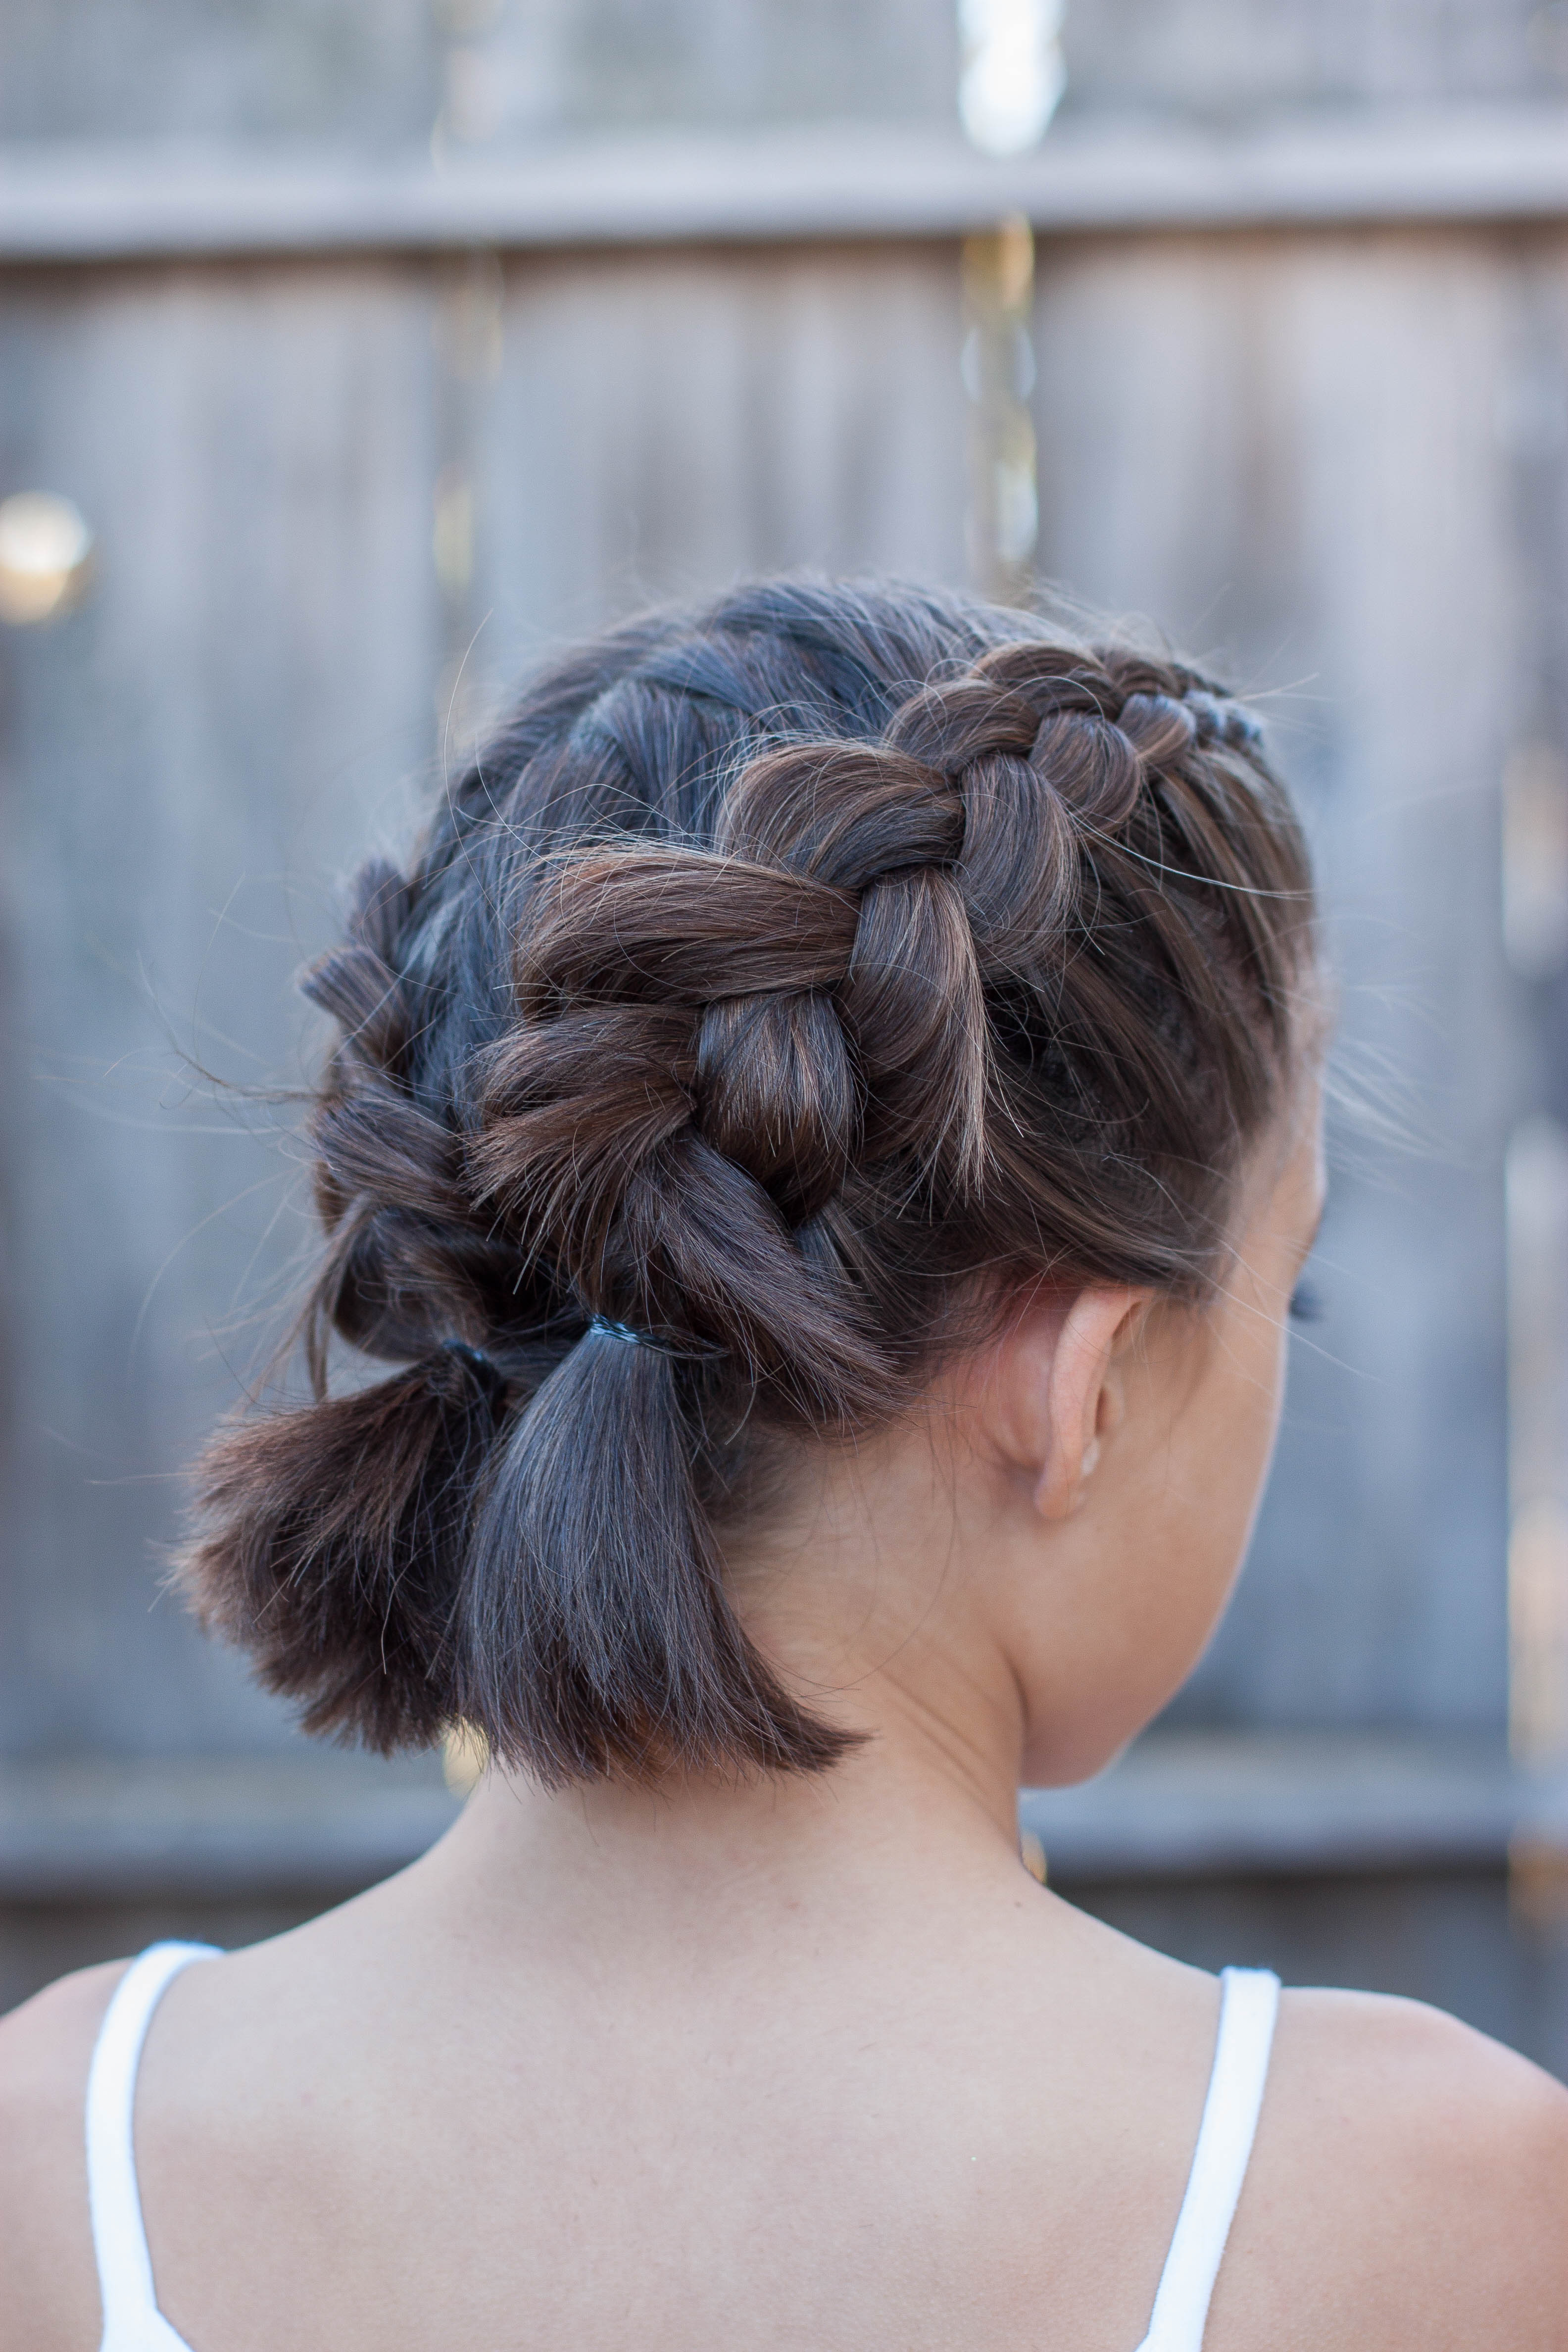 Pretty Hairstyles For Girls With Short Hair trendy styles